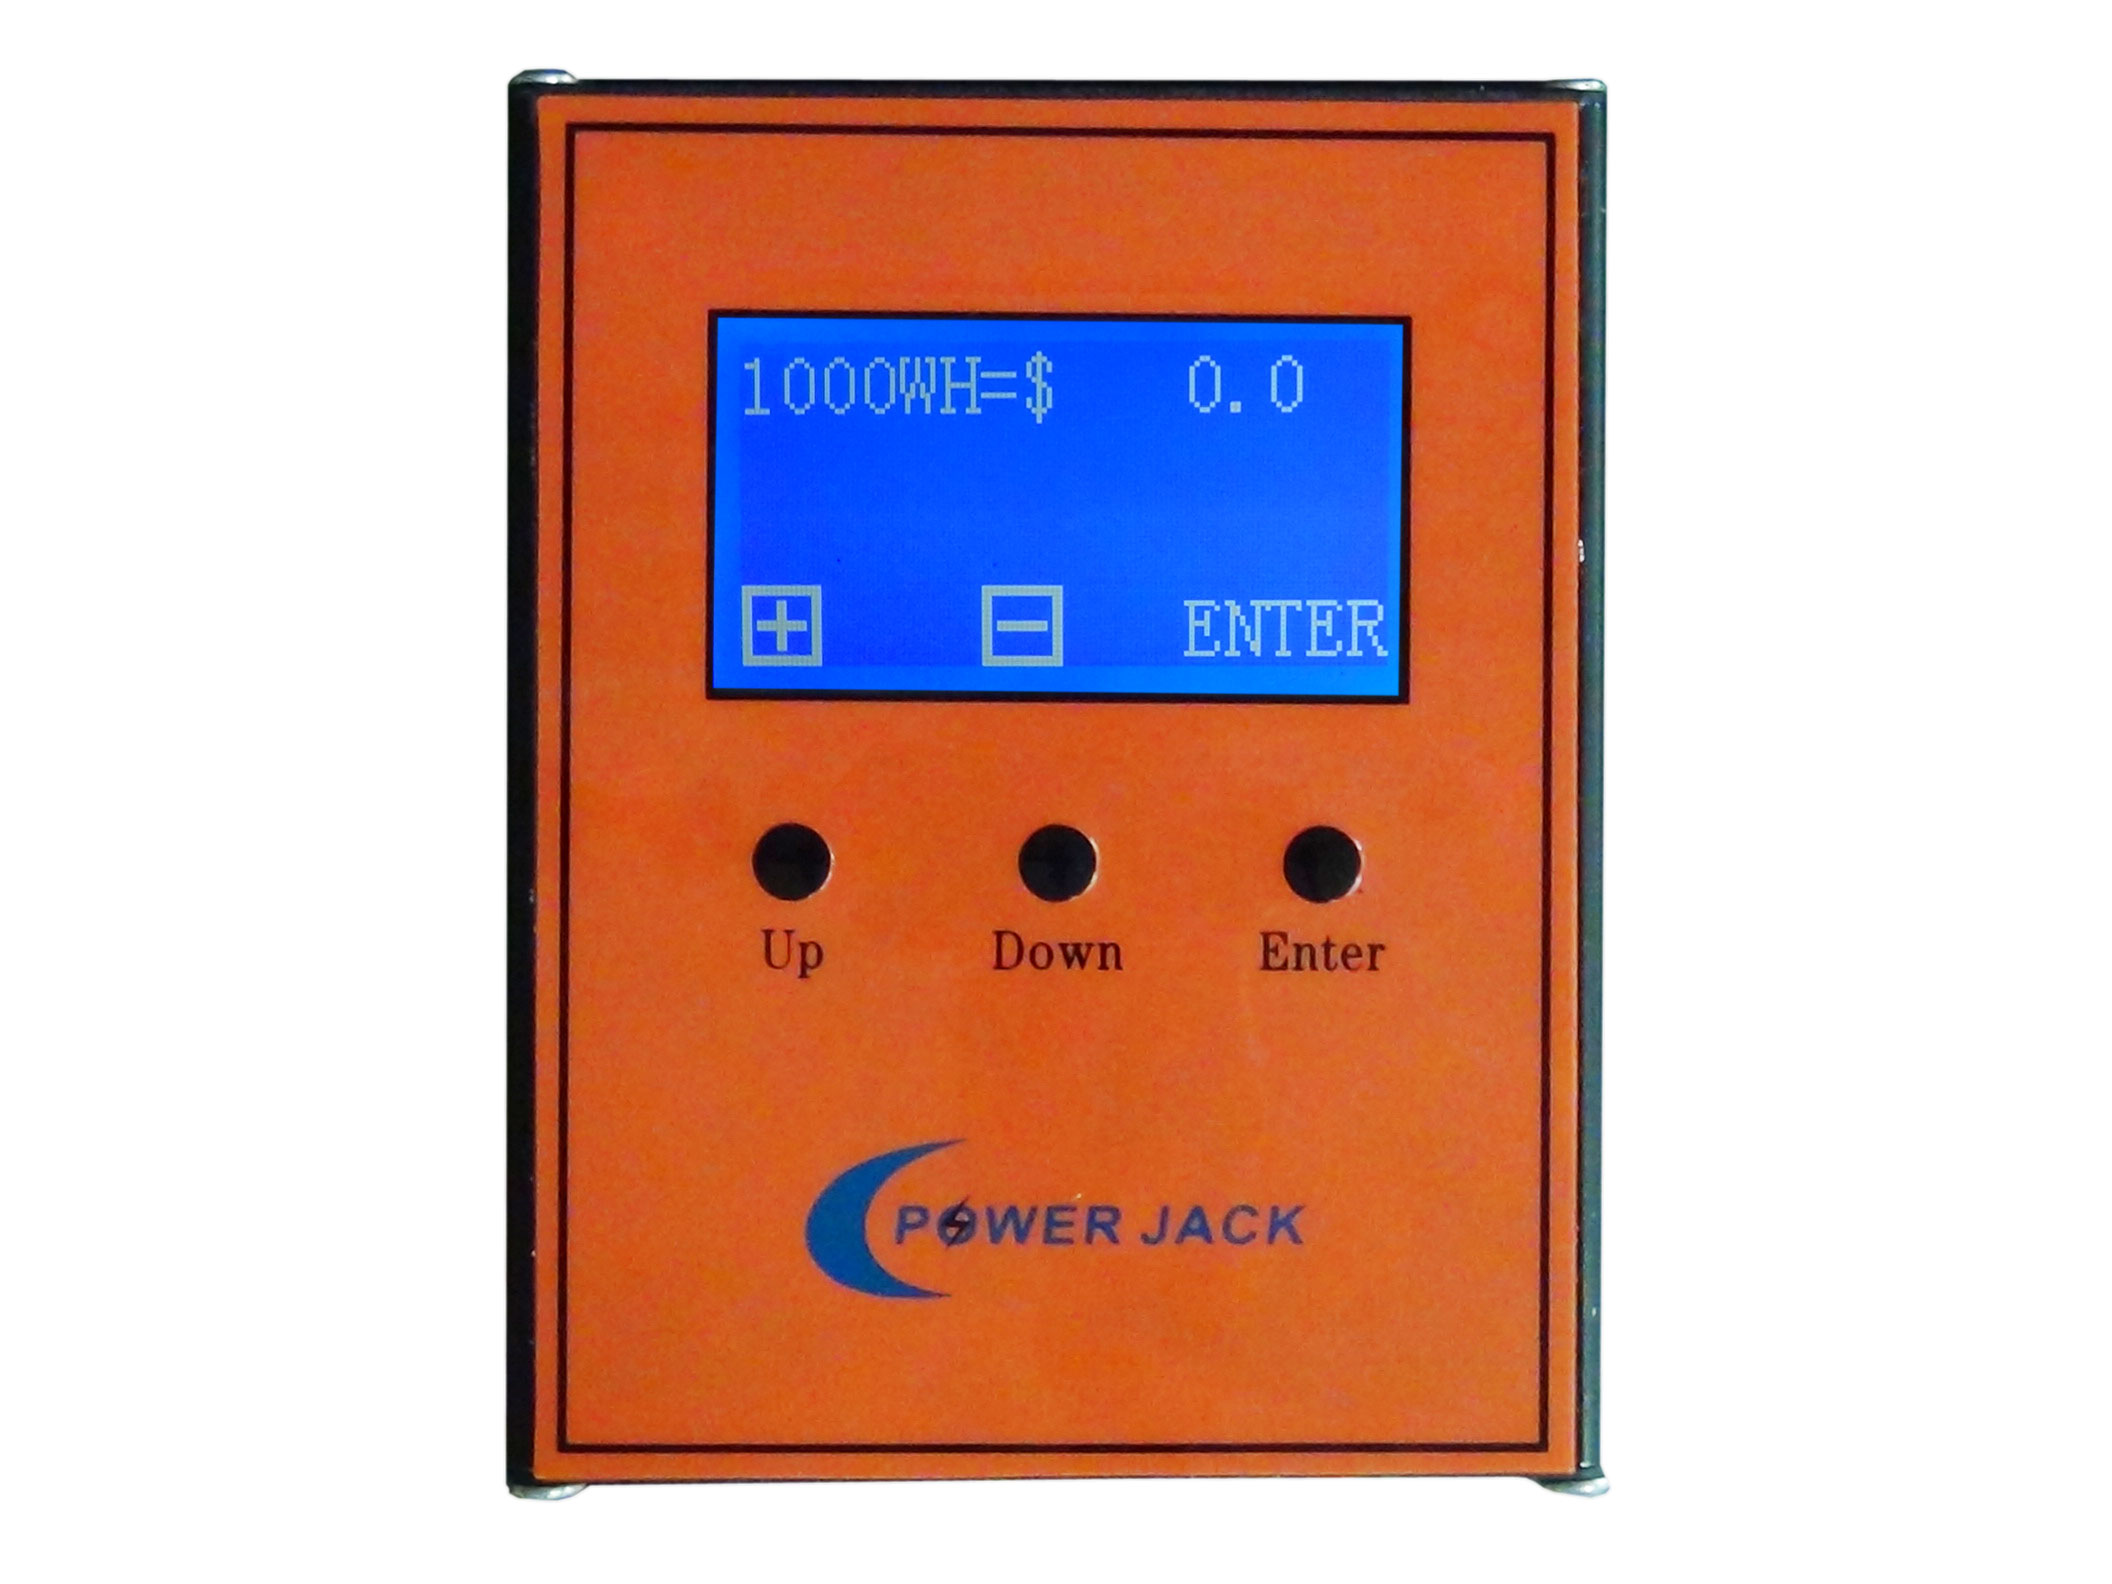 Homesteader Off Grid System 3 in addition 262444104430 likewise Residential Solar Panels further Shanghai Electric Sese P160 Watt Solar Panel Module in addition Megazine. on how much watts solar panel we need for